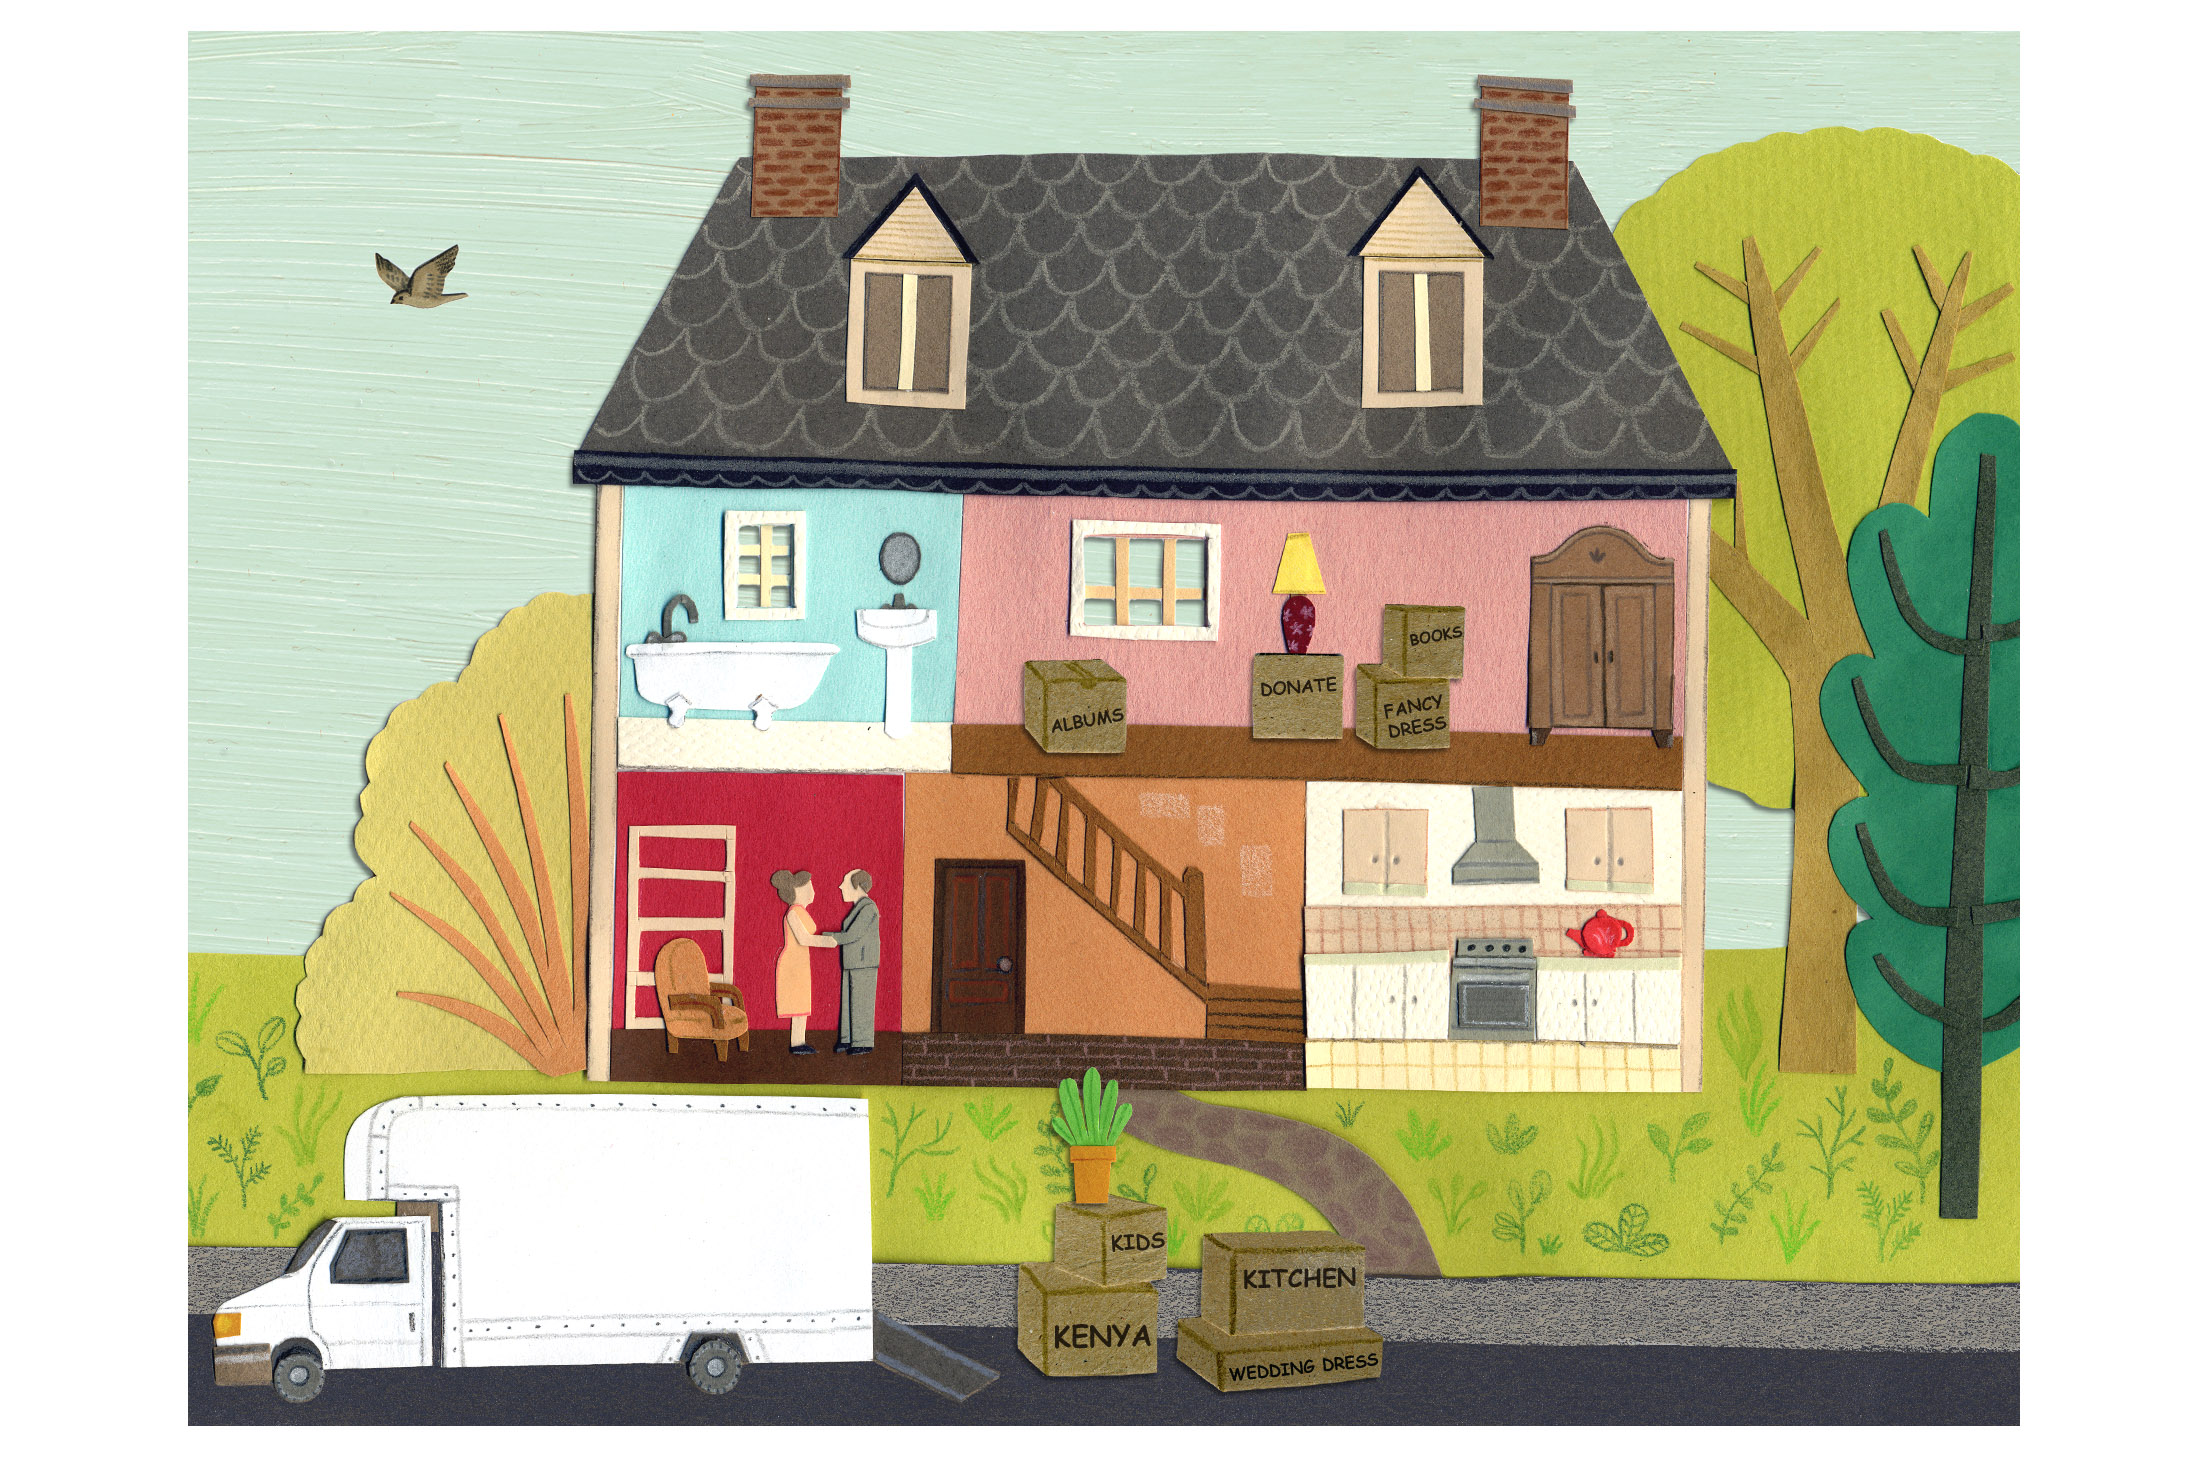 waitrose_weekend_moving_house_dollhouse_illustration.jpg